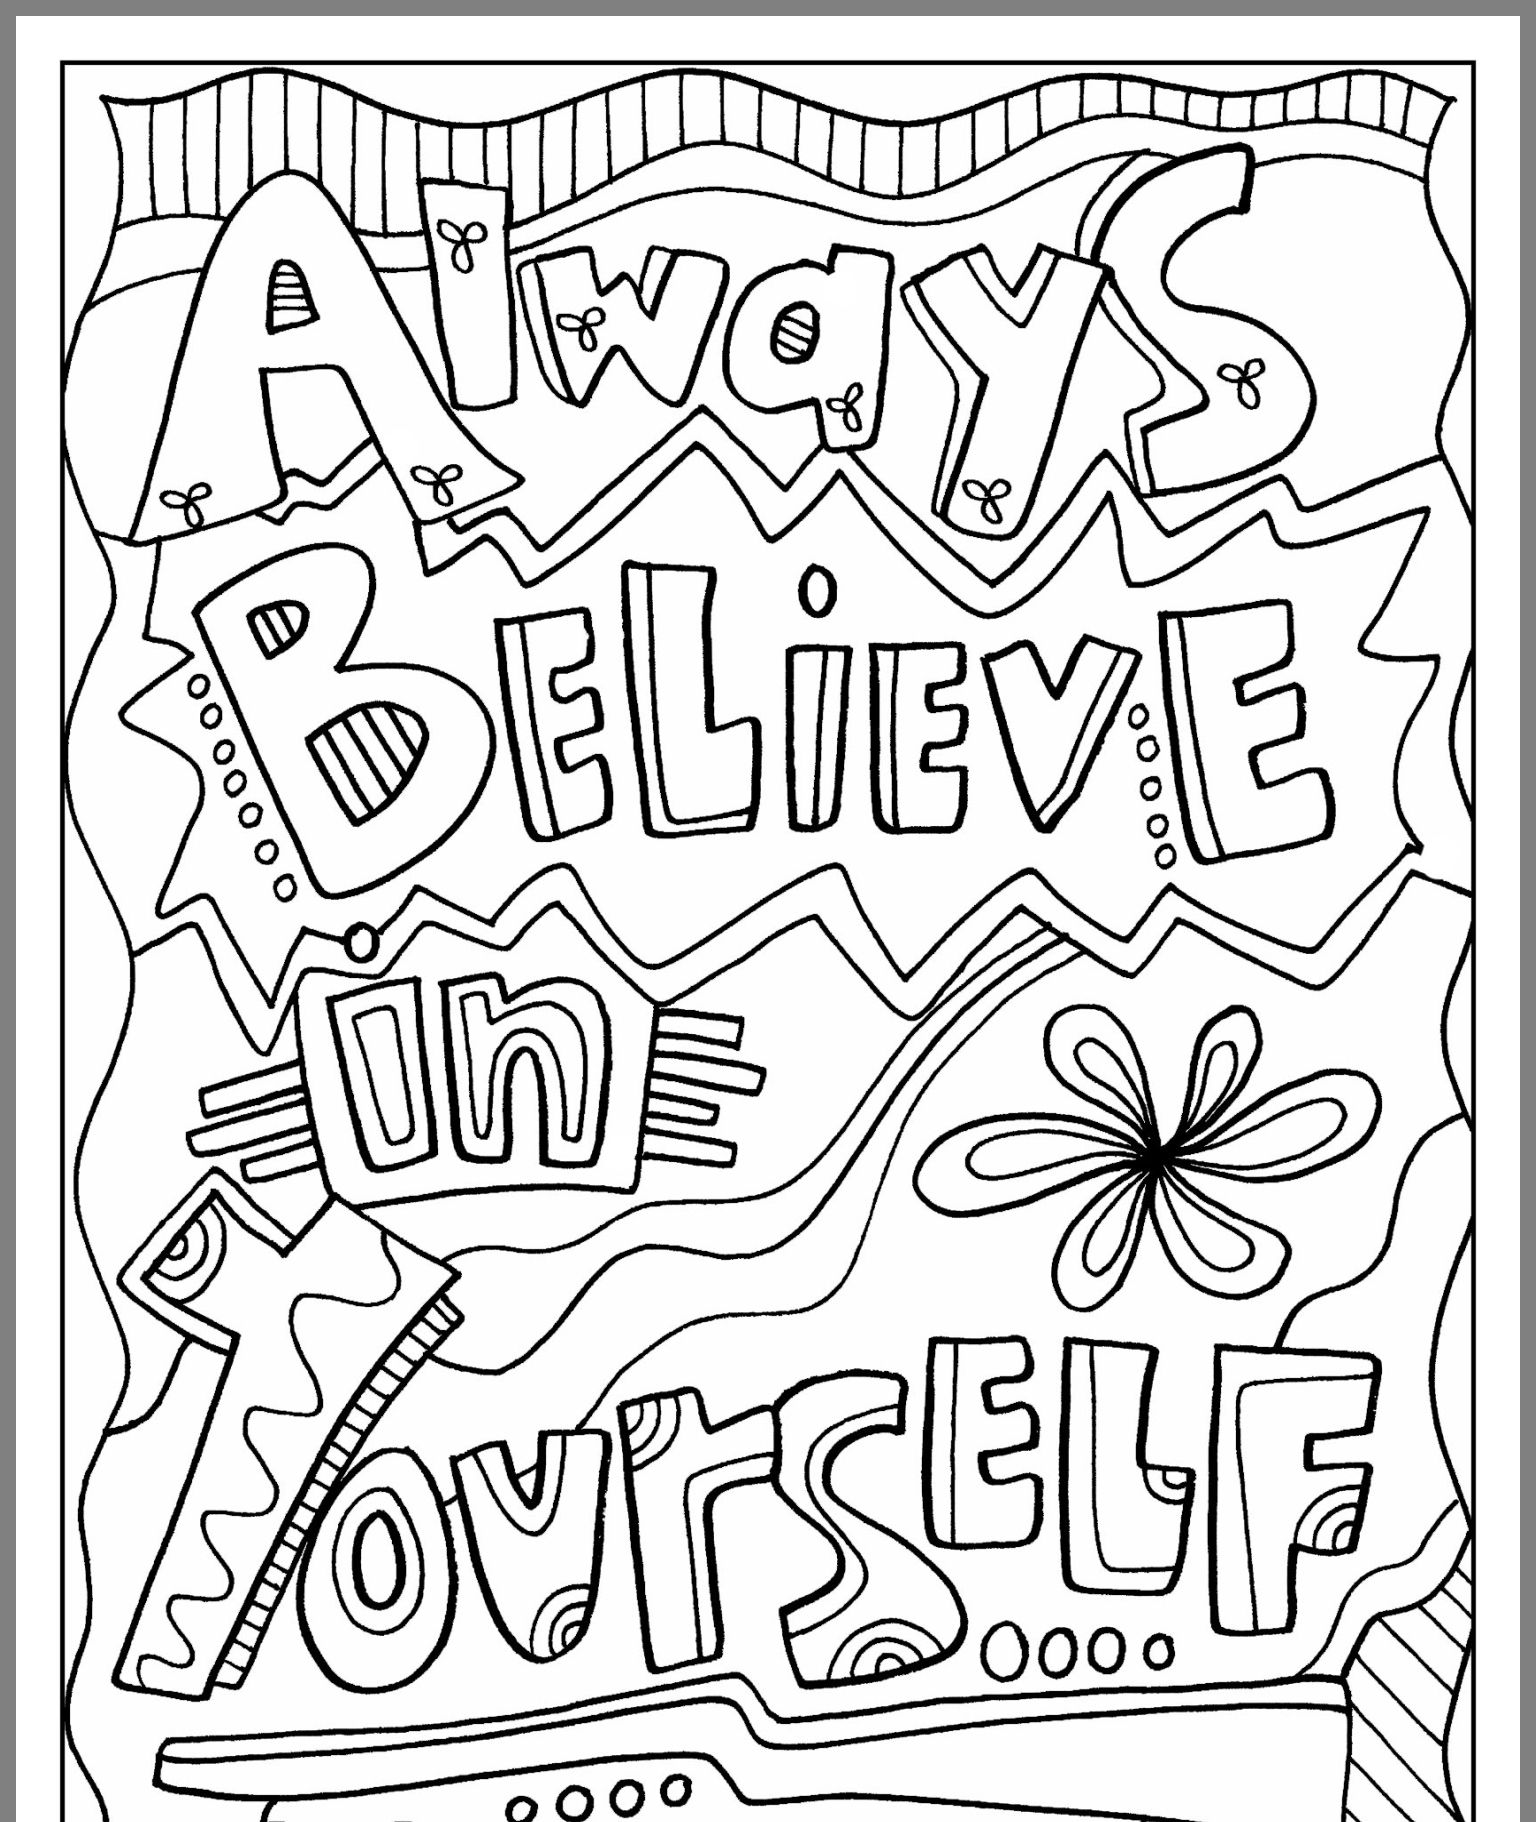 kids quote coloring pages quote coloring pages for adults and teens best coloring coloring quote kids pages